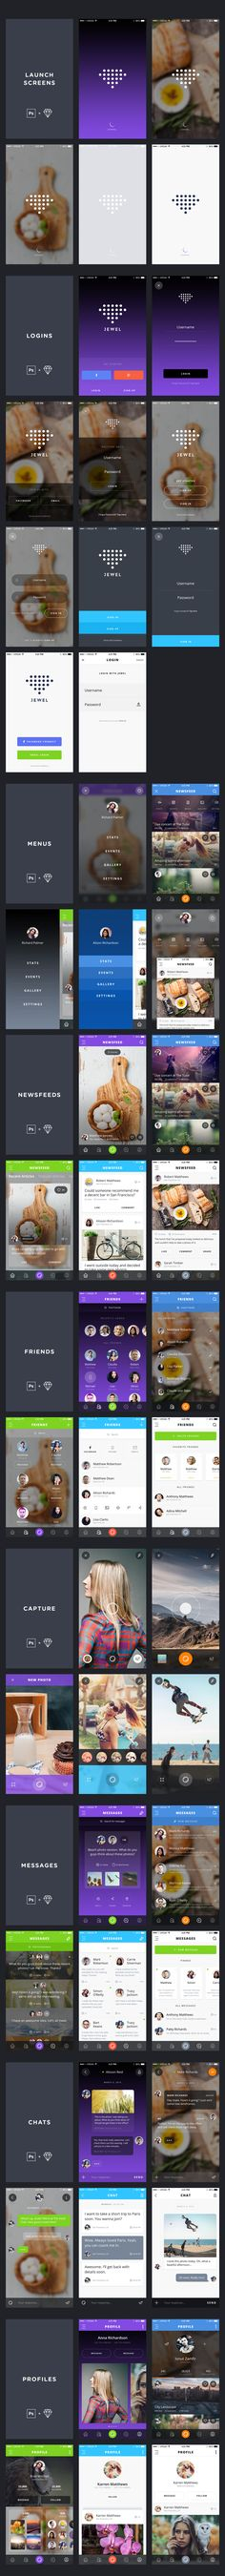 Jewel - The Complete iOS UI Kit by Ionut Zamfir on Creative Market